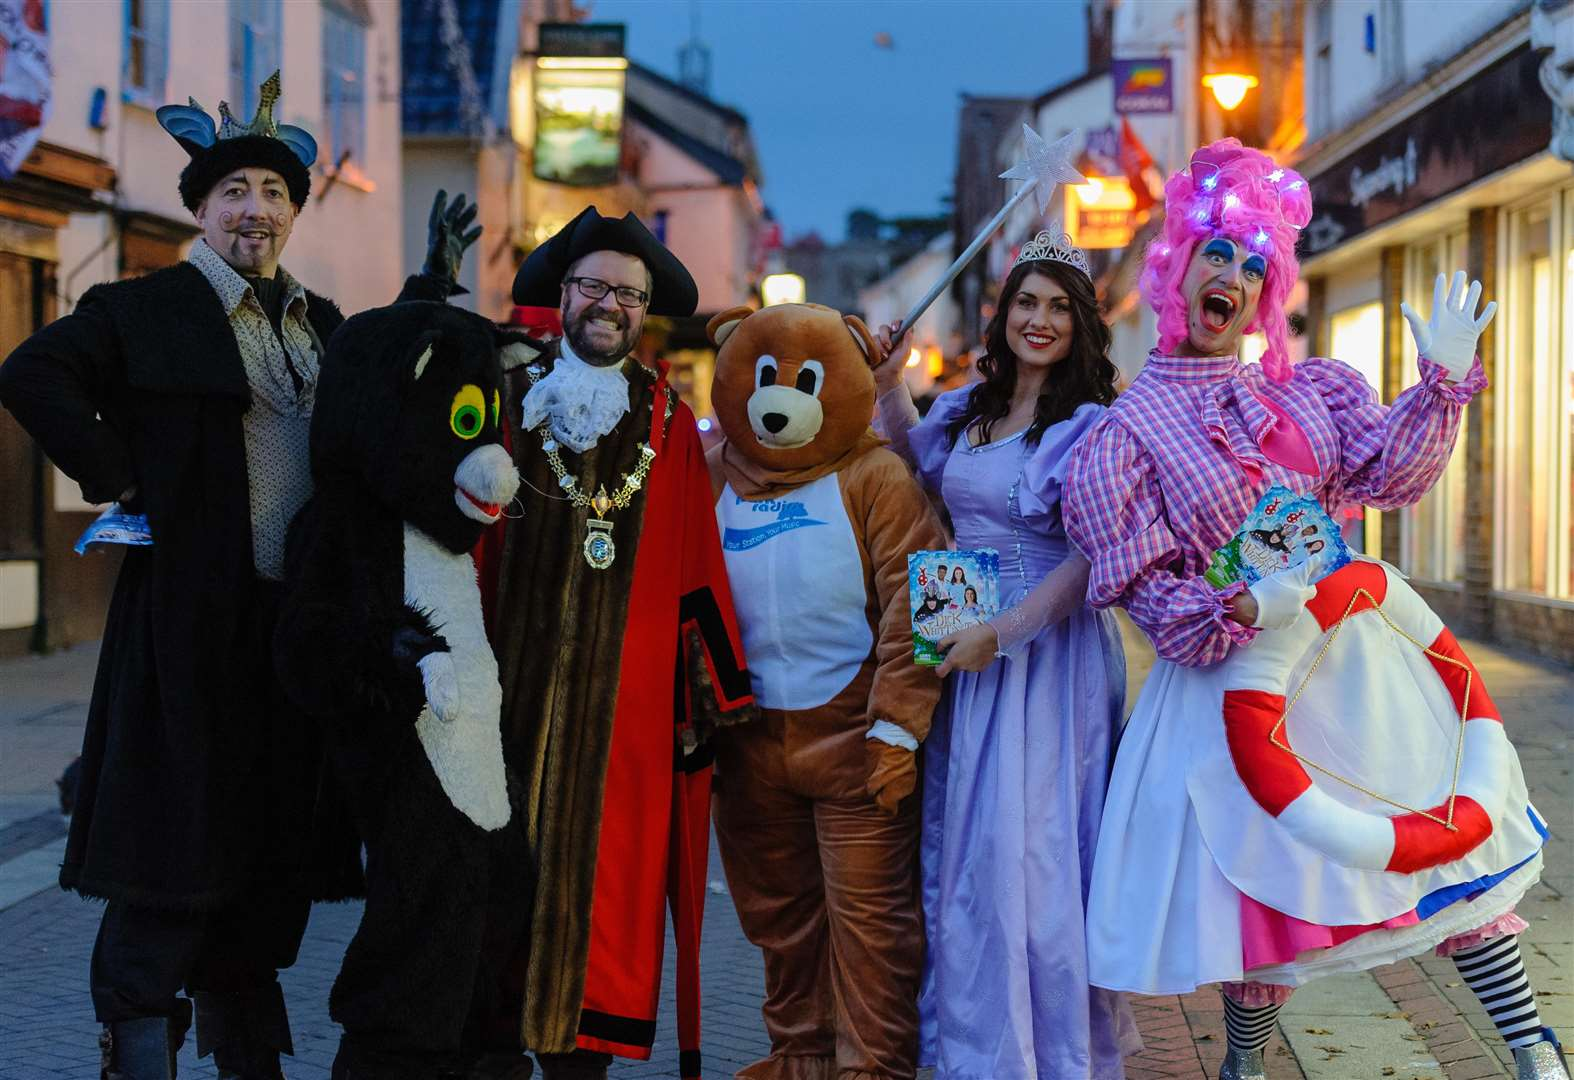 More than 2,000 attend Diss Christmas lights switch-on